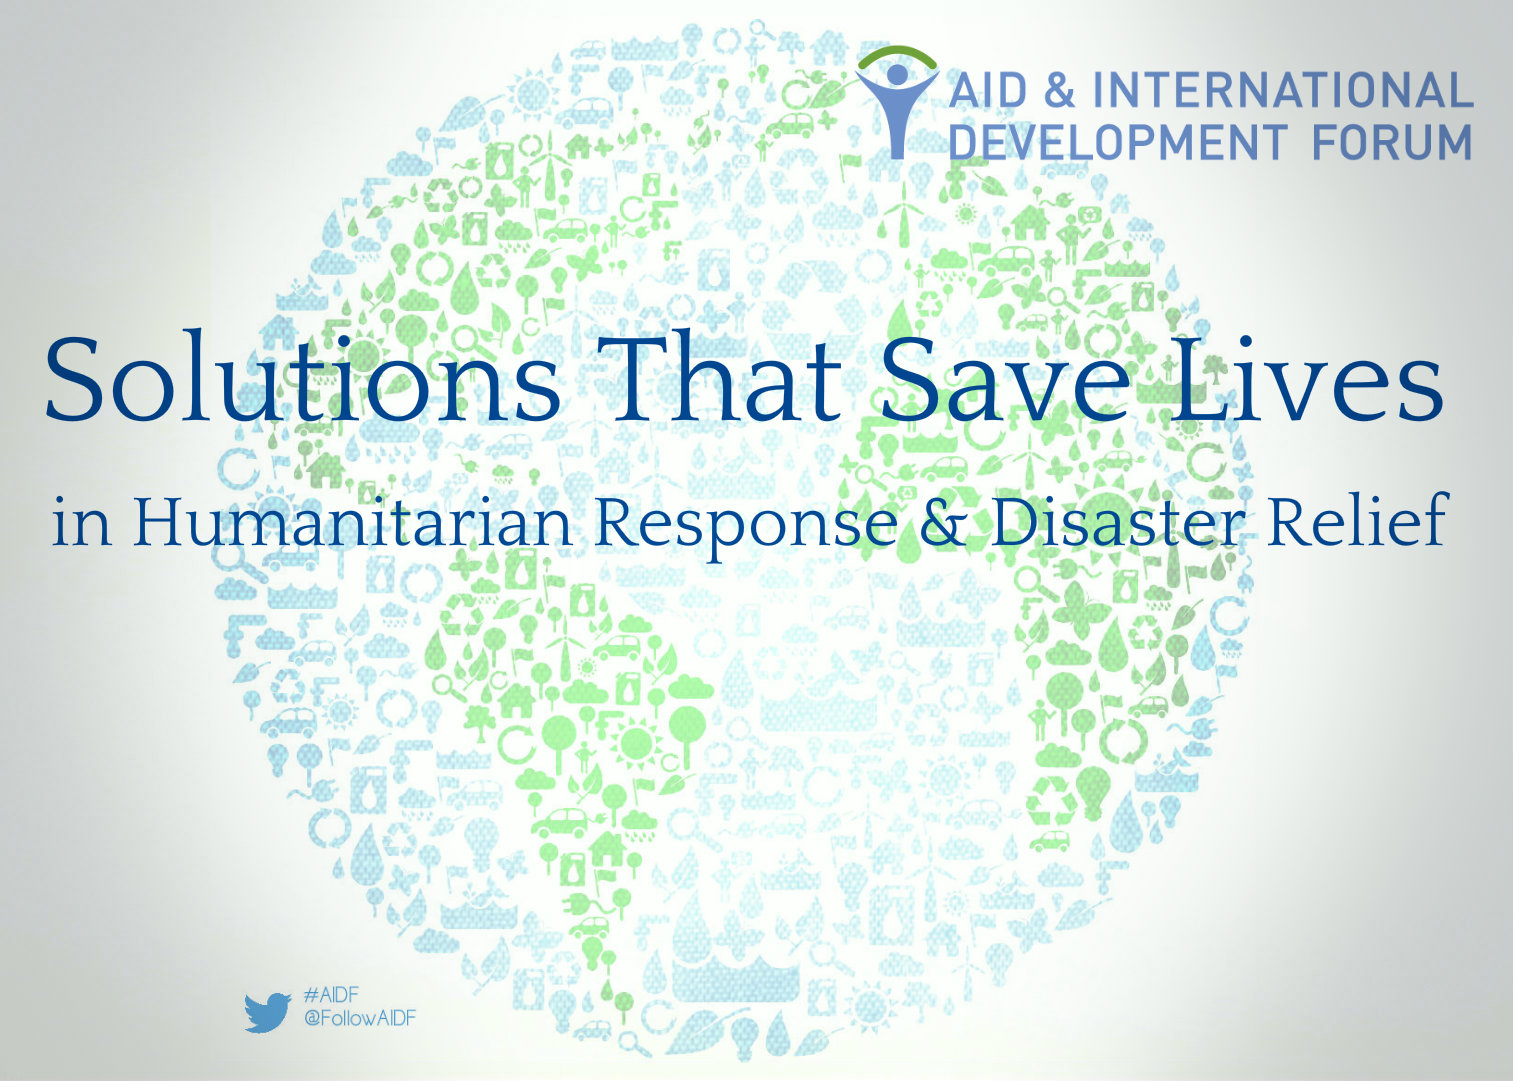 Solutions That Are Saving Lives in Humanitarian Response